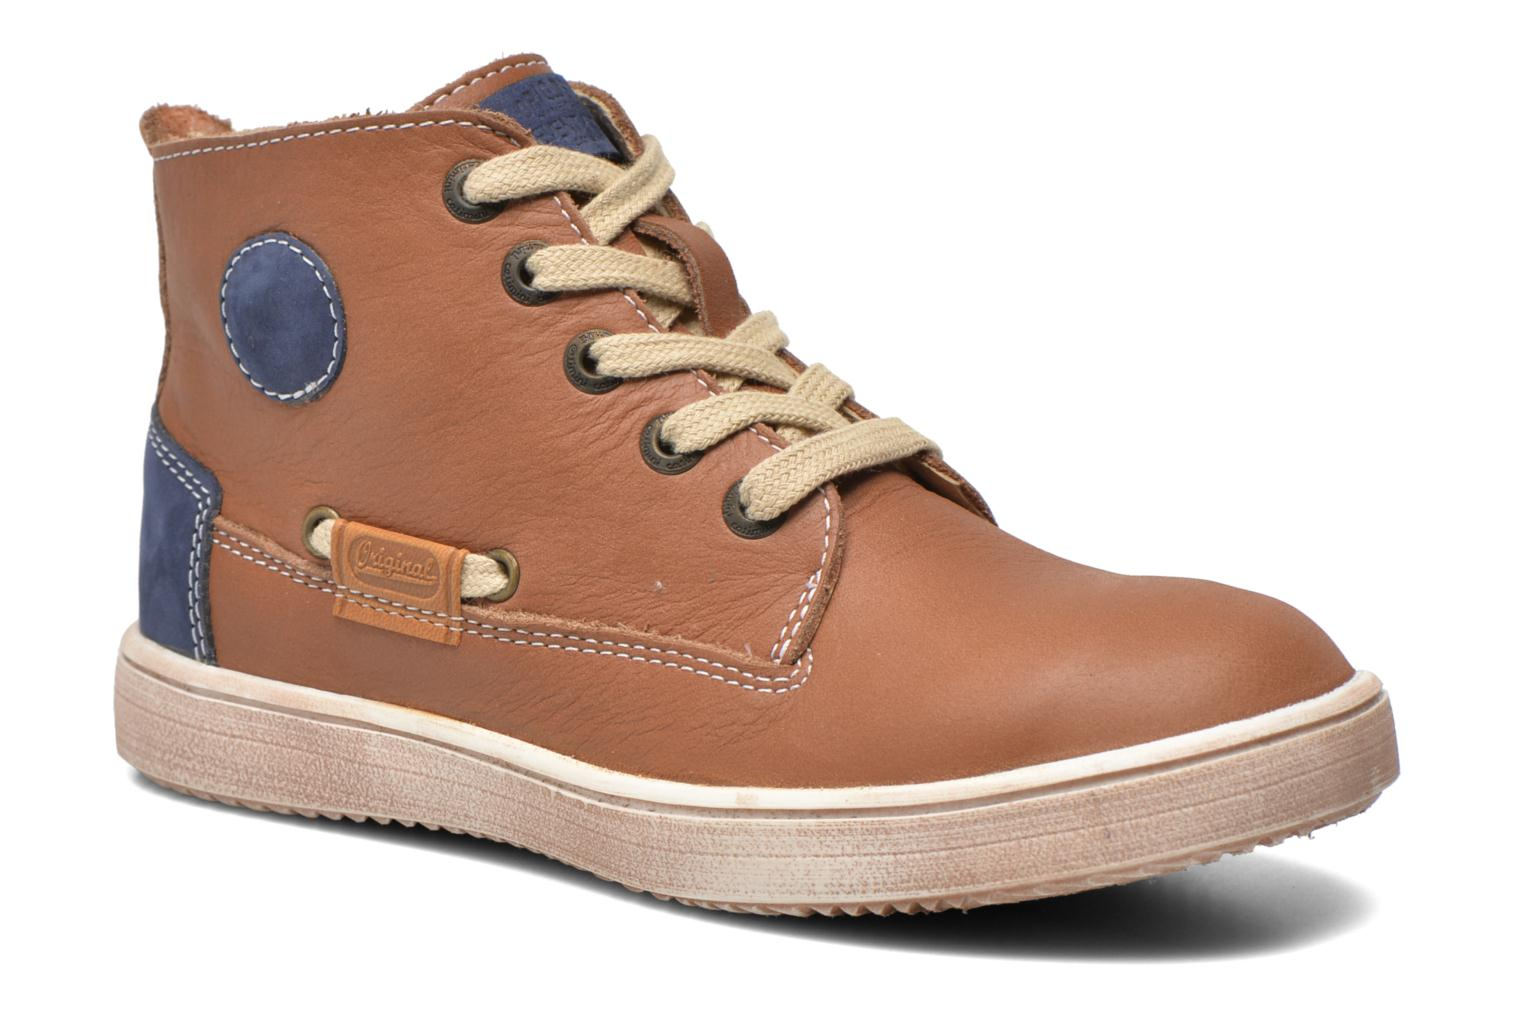 Sneakers Couto by Catimini